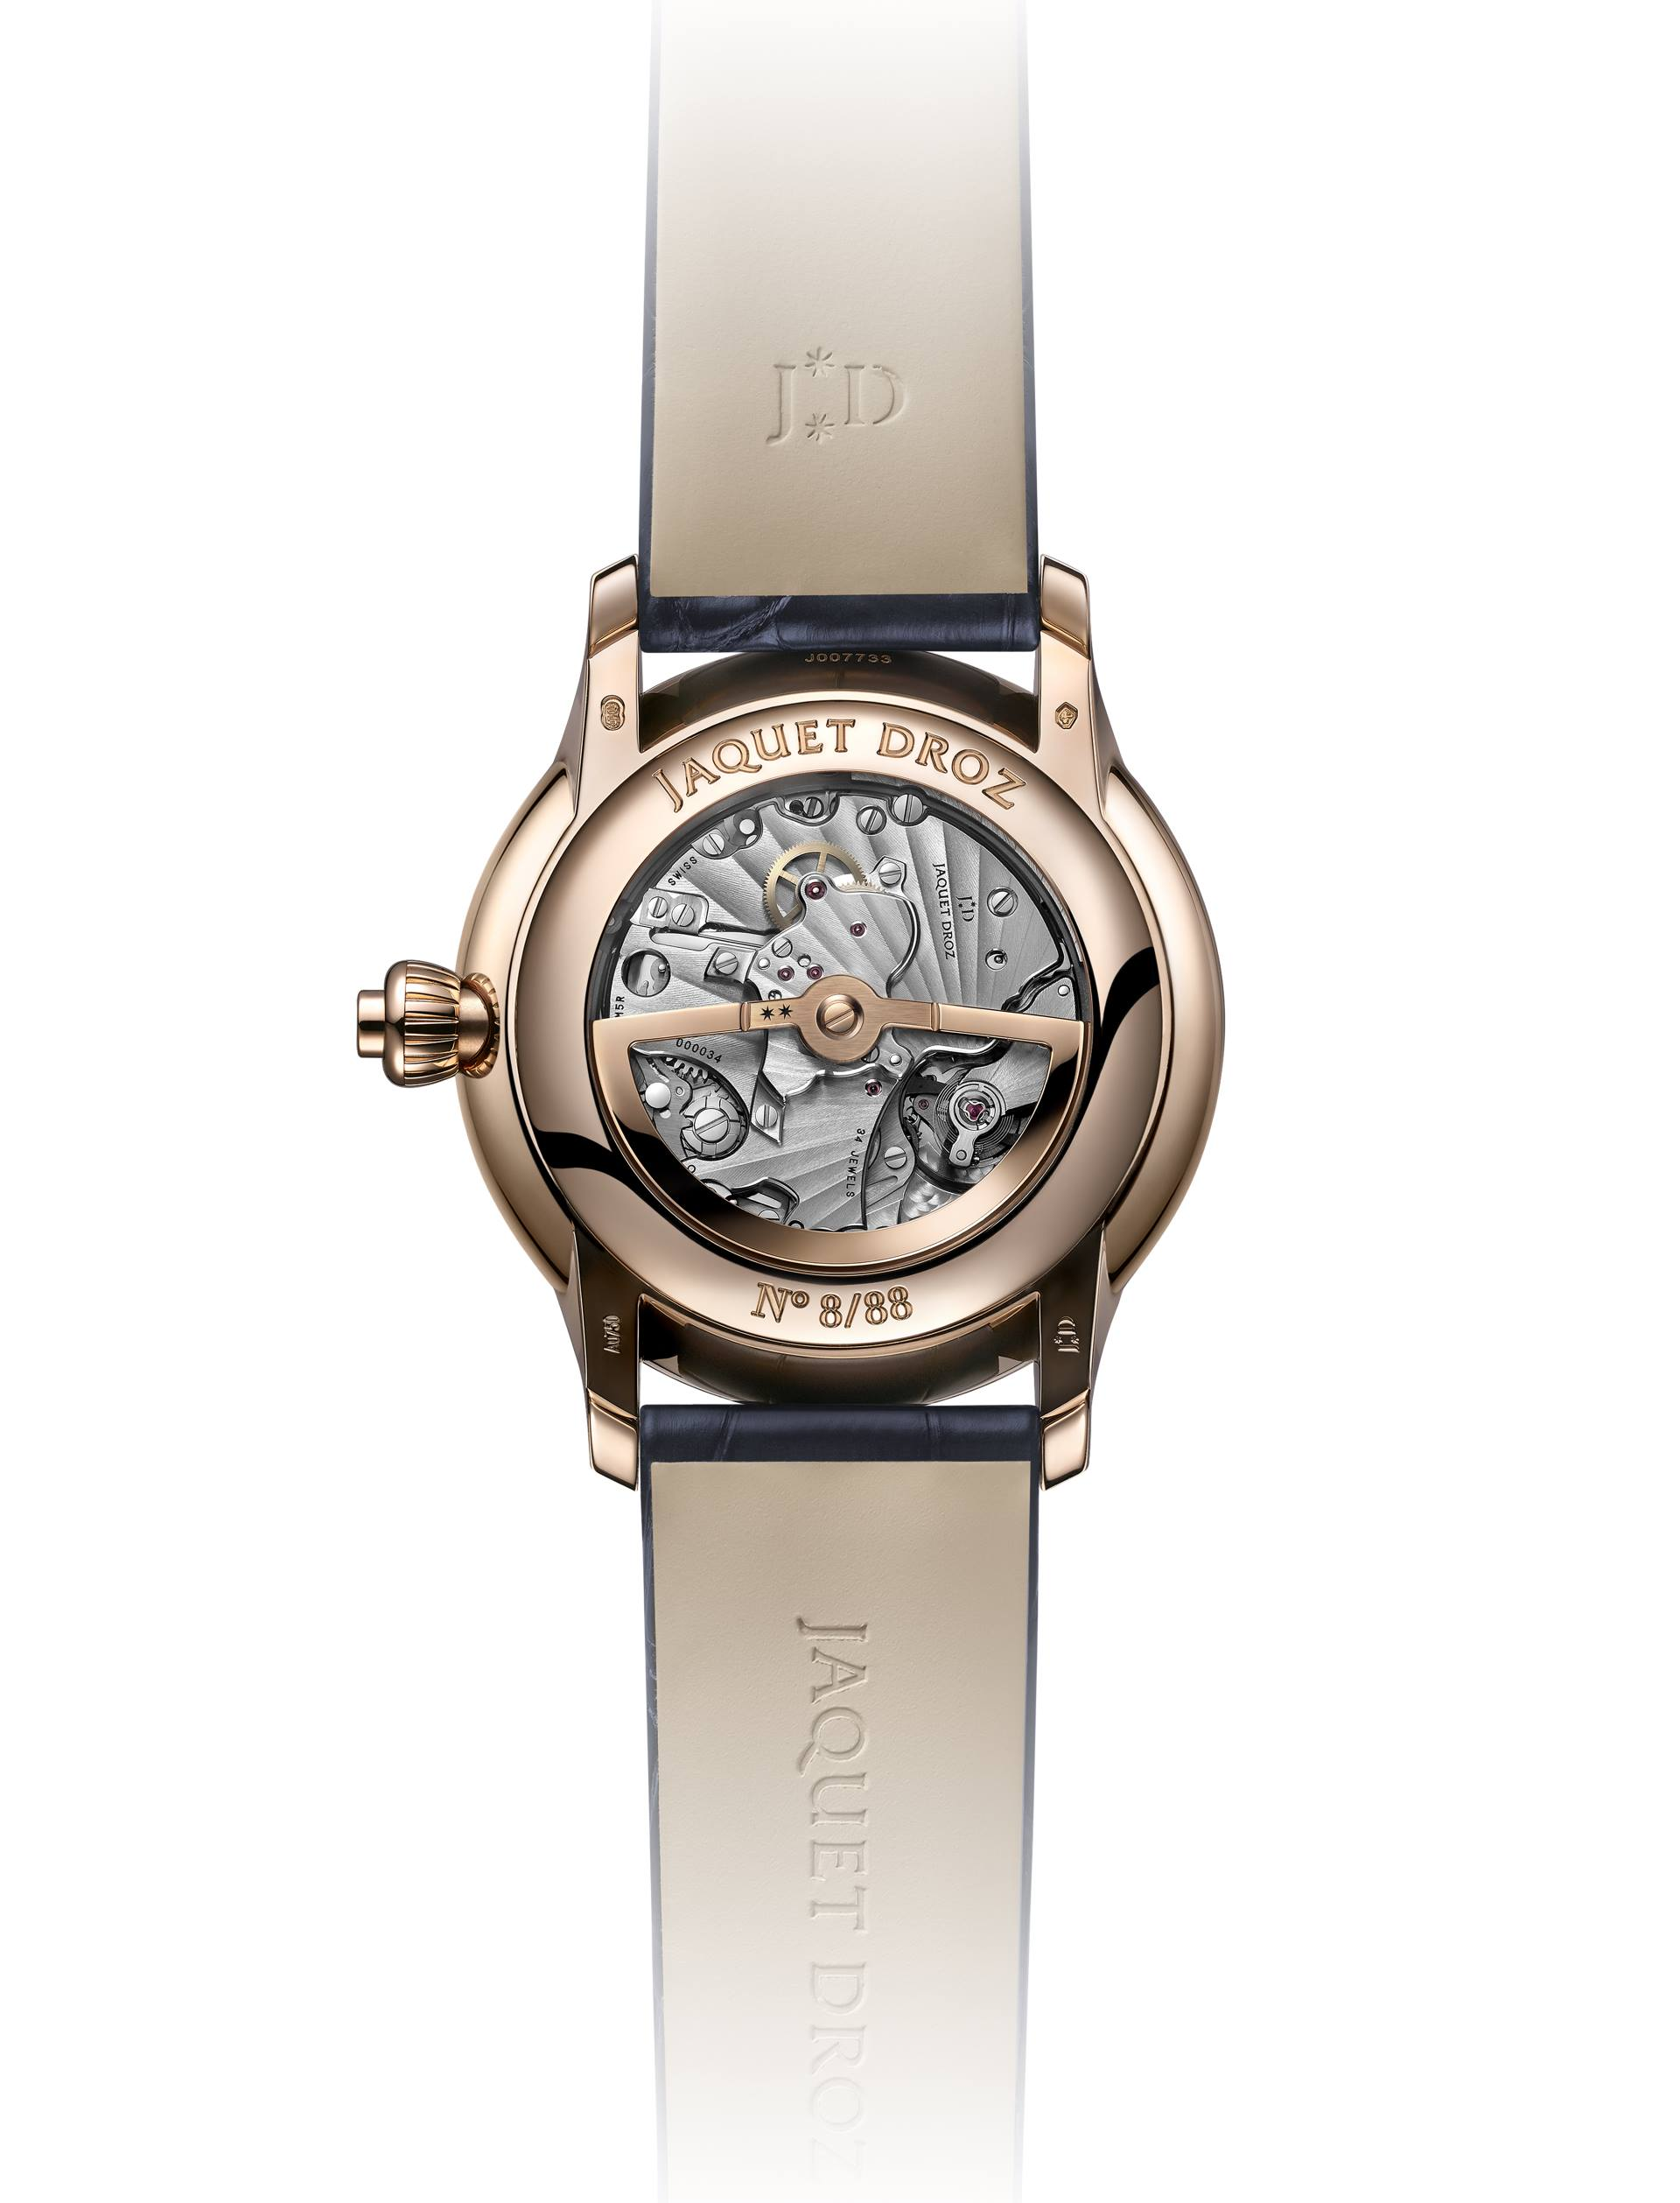 Jaquet Droz: Grande Seconde Chronograph